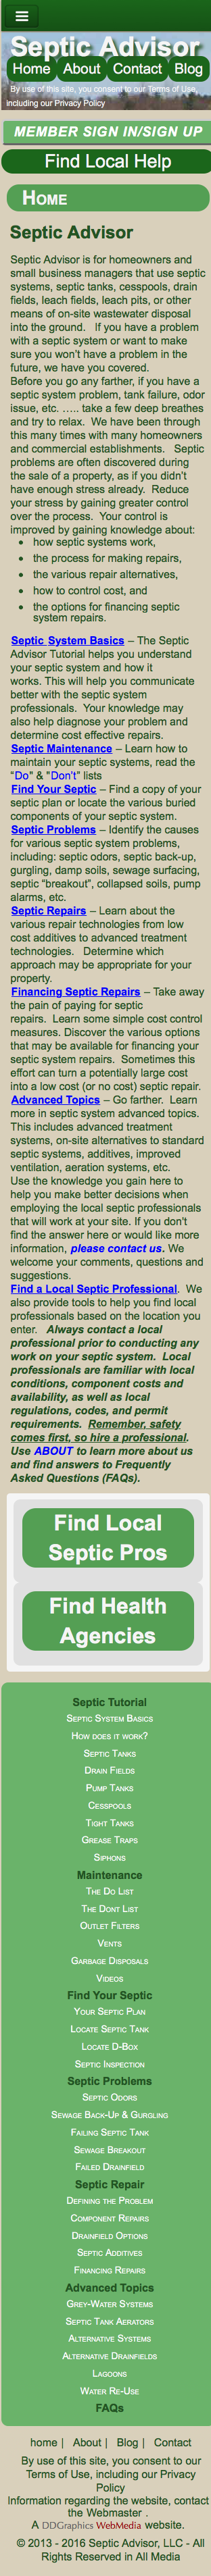 Septic Advisors